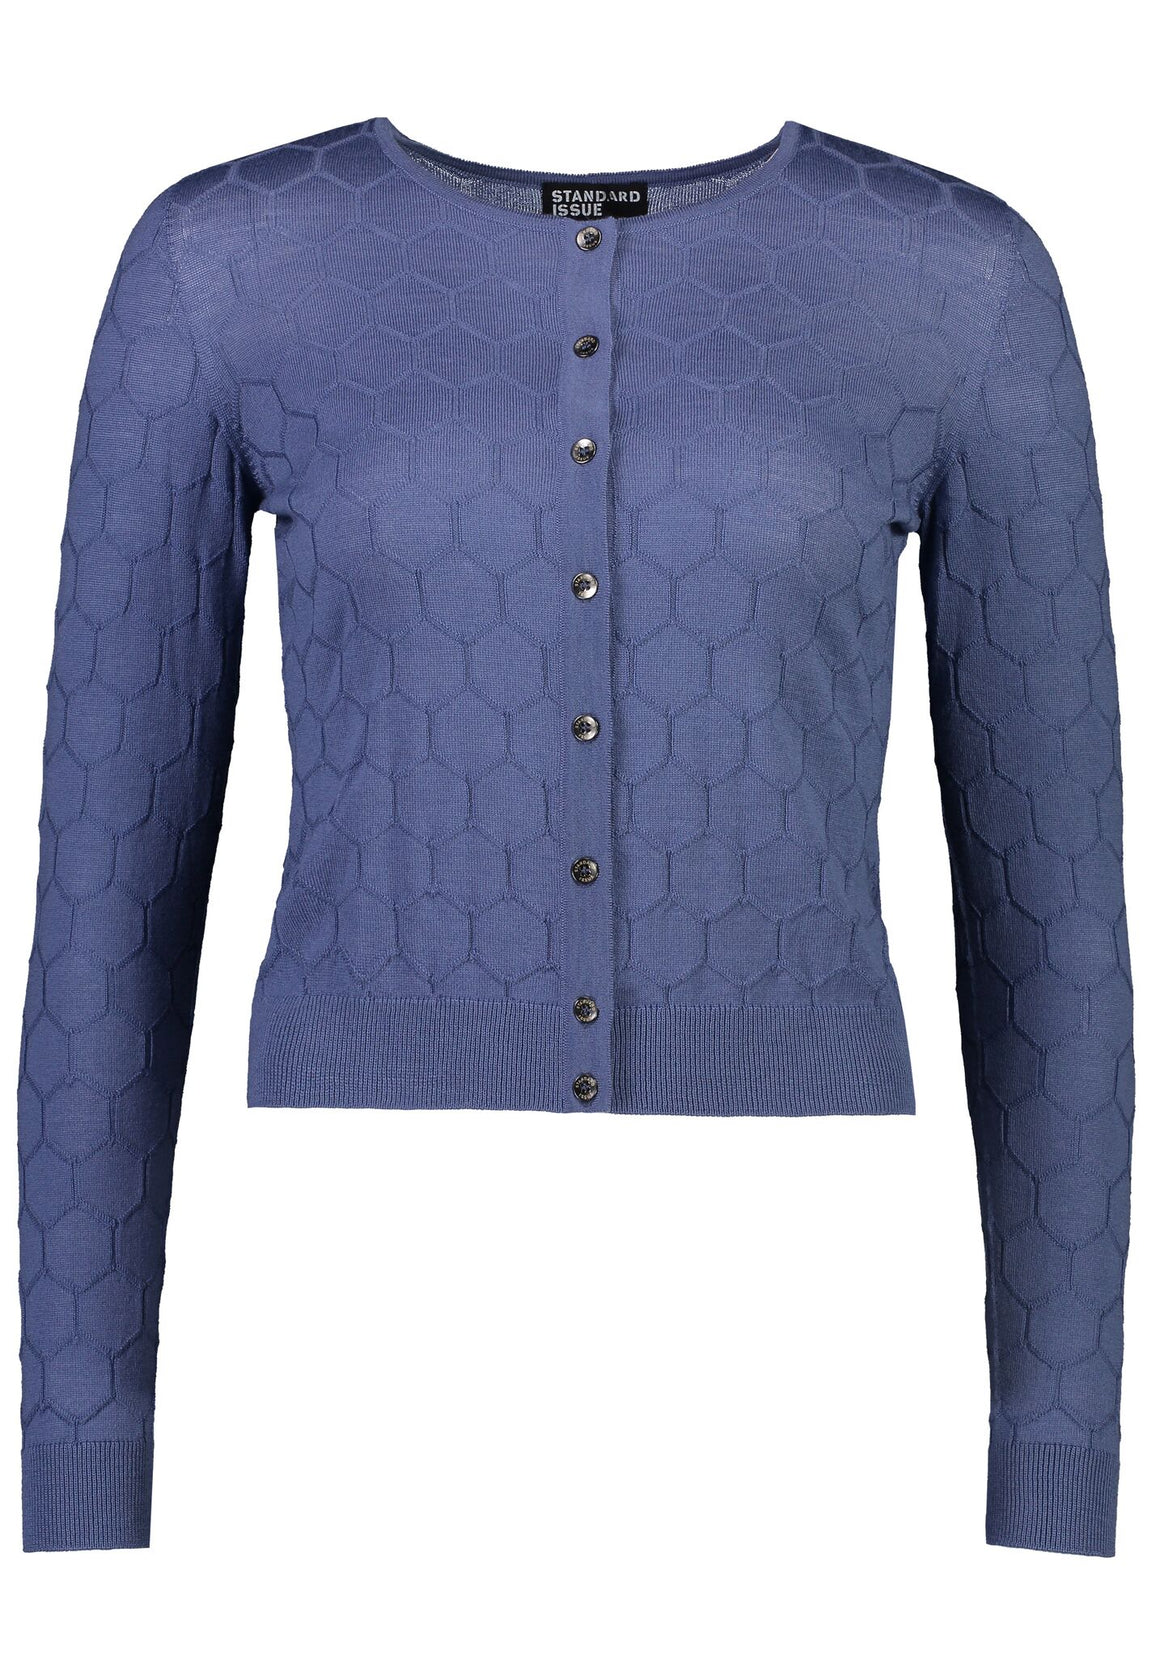 Standard Issue Honeycomb Cardi - Moonlight